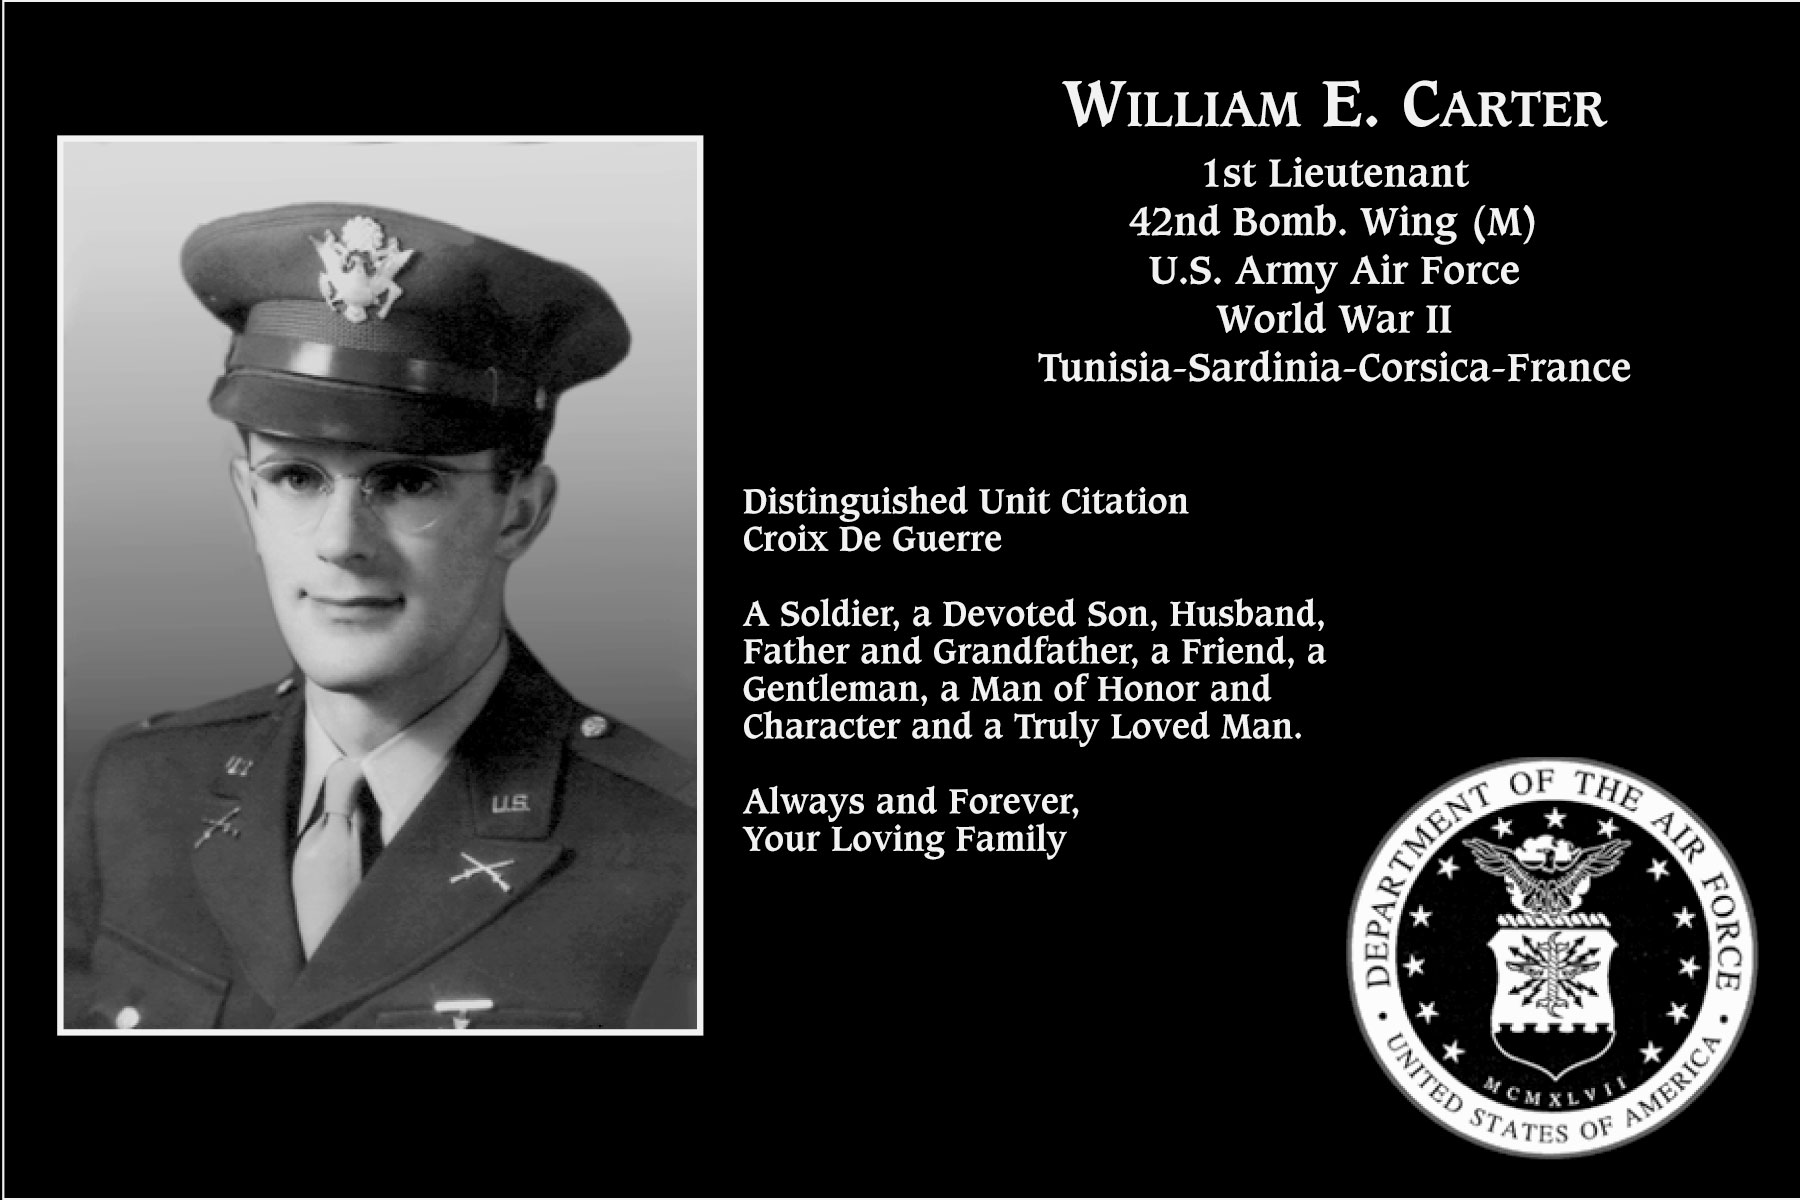 William E. Carter